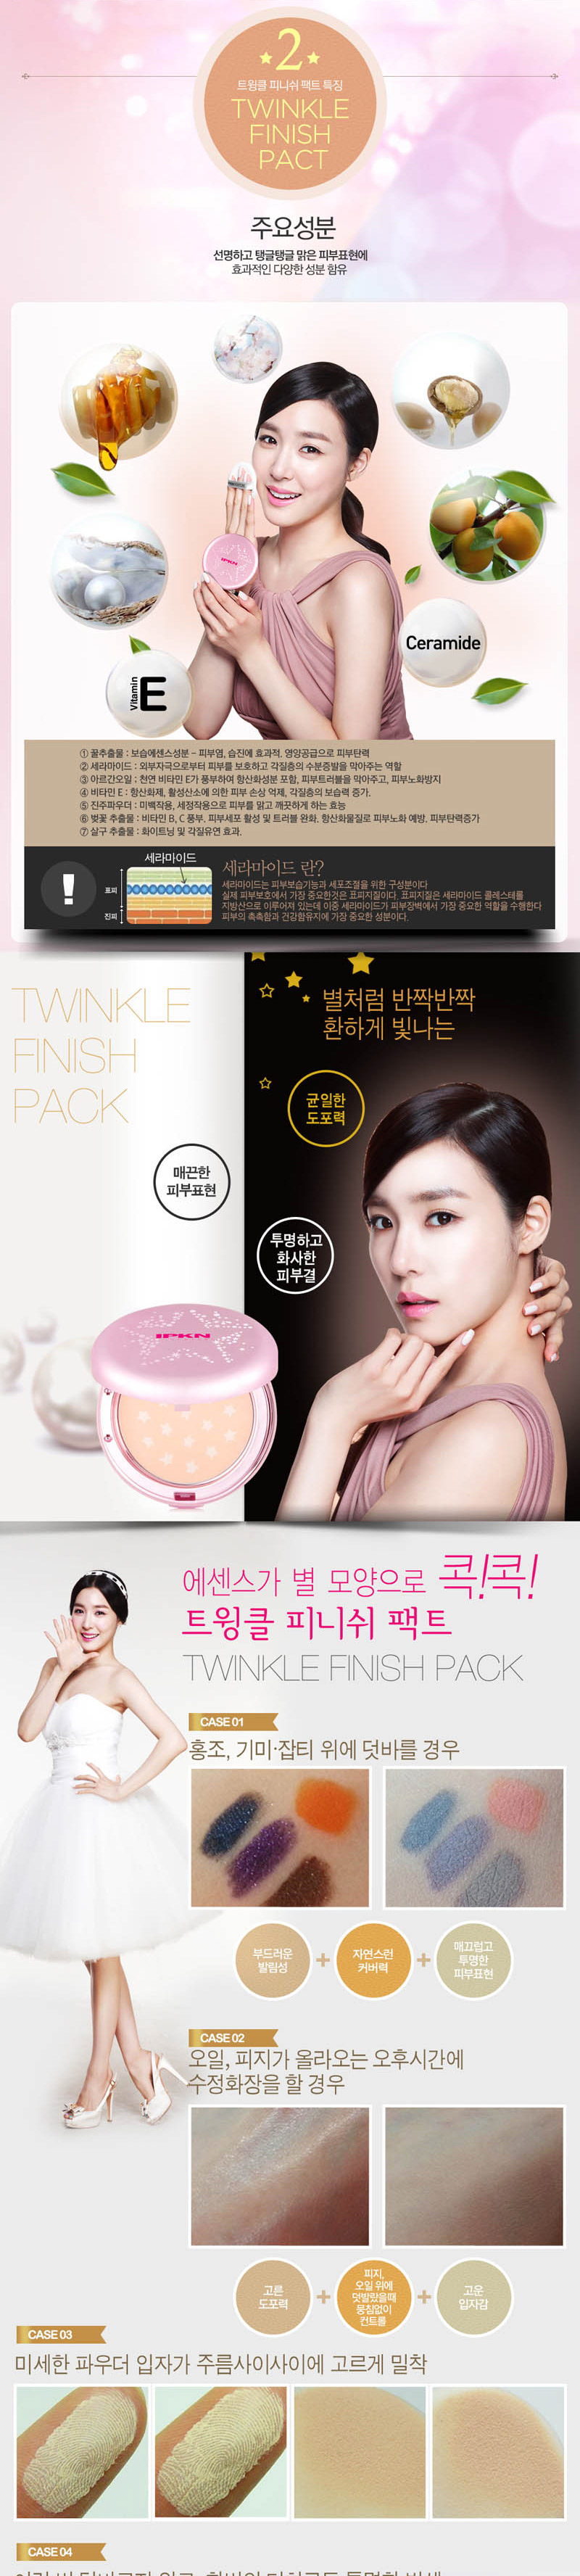 [140416] Tiffany (SNSD) New Picture for IPKN CF [3]